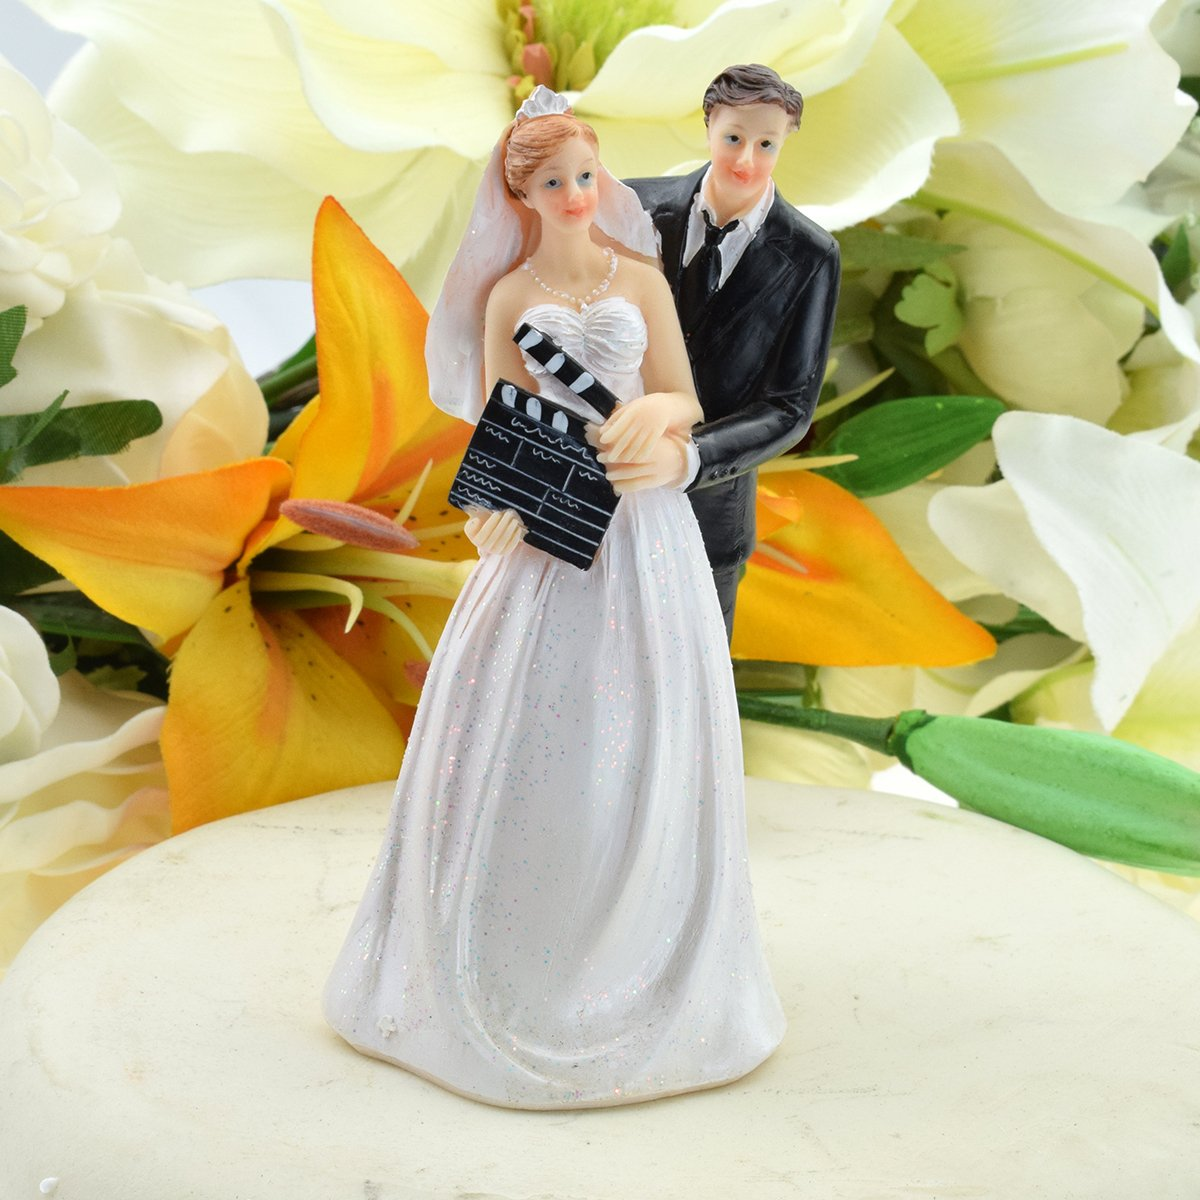 Bride & Groom Filmstars with Clapperboard Cake Topper 13.5 cm Tall ...